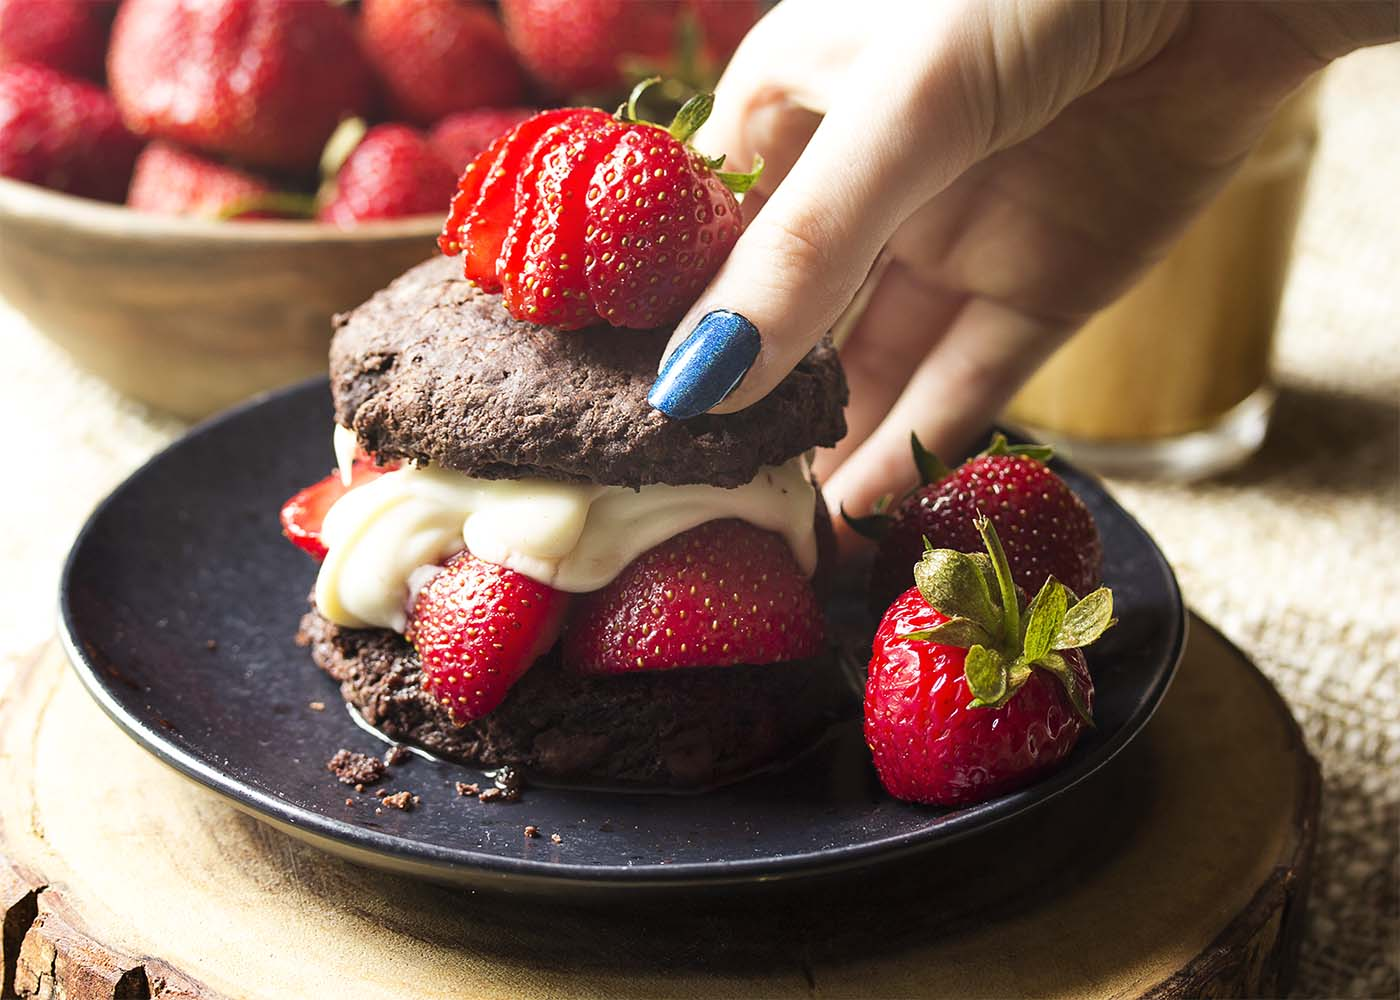 A hand picking up a strawberry shortcake off a black plate.